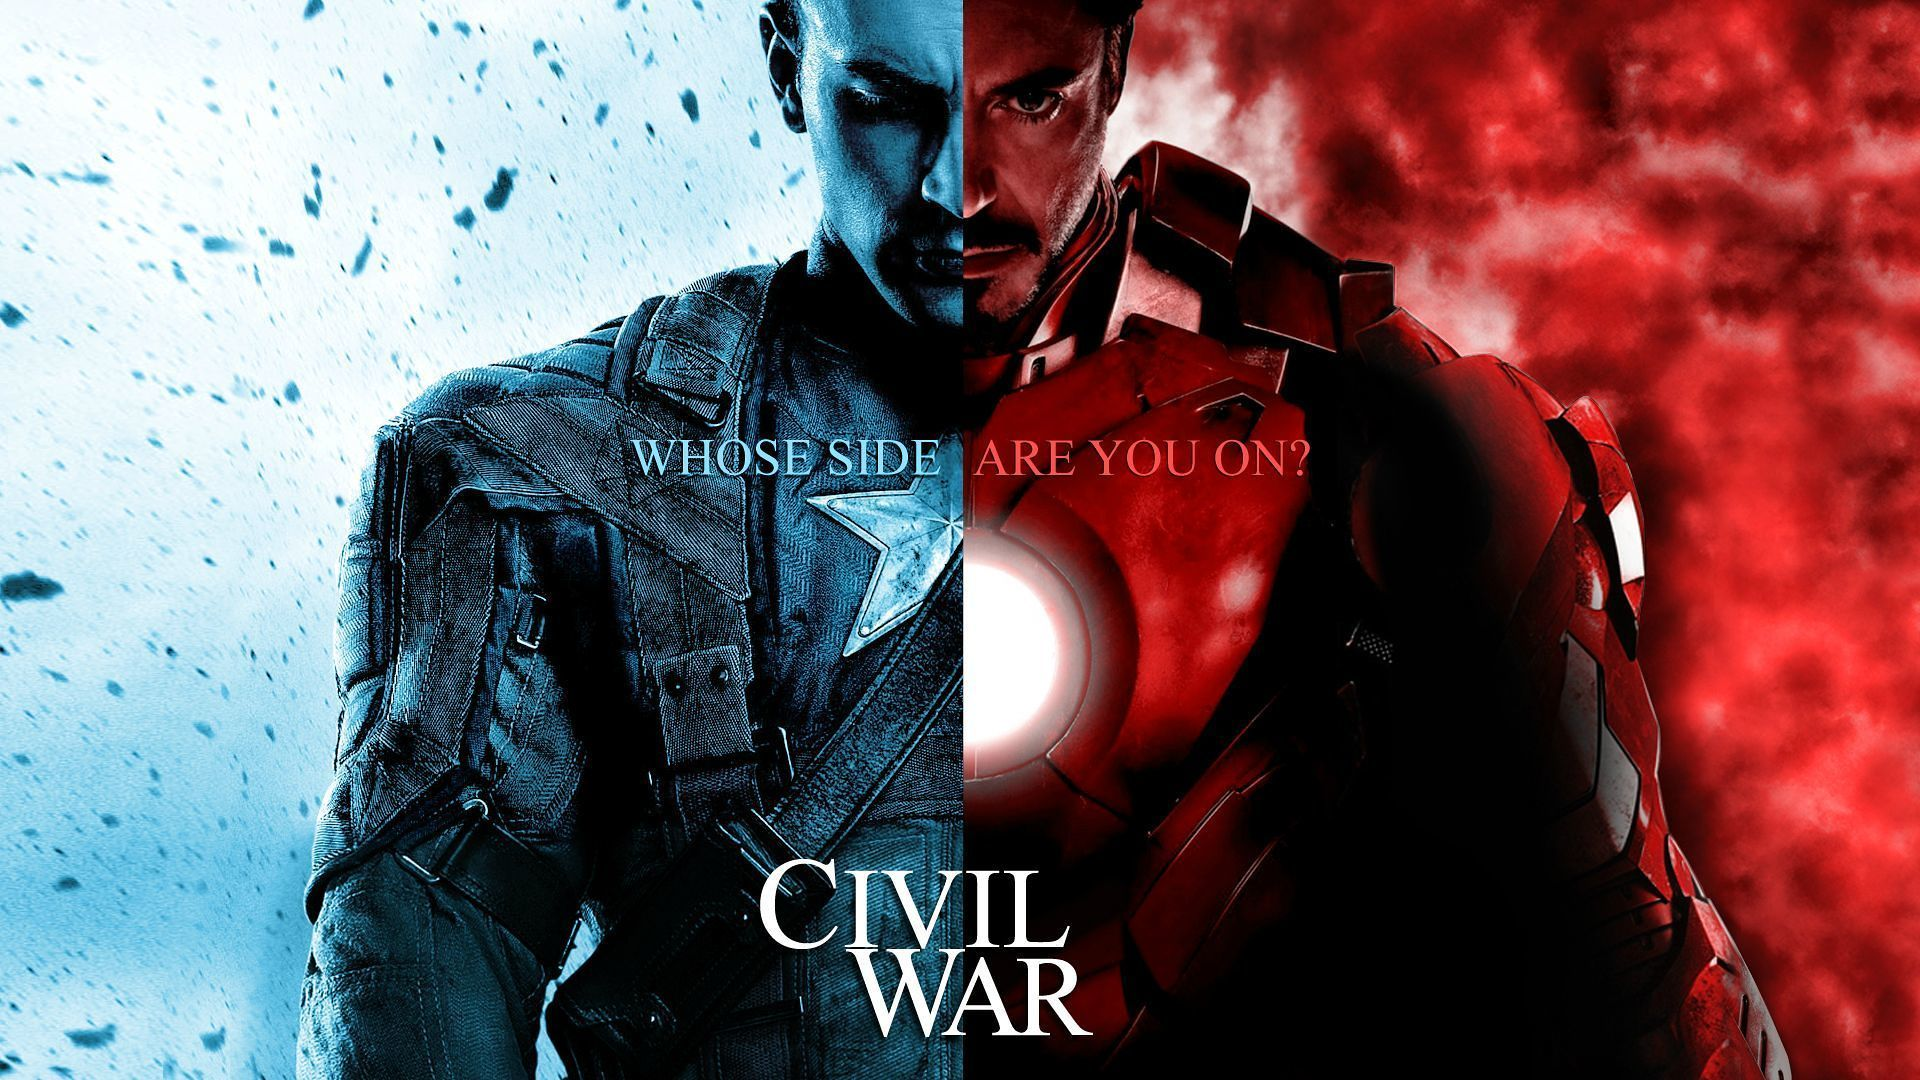 Captain-America-Civil-War-wallpaper-wpc9003352